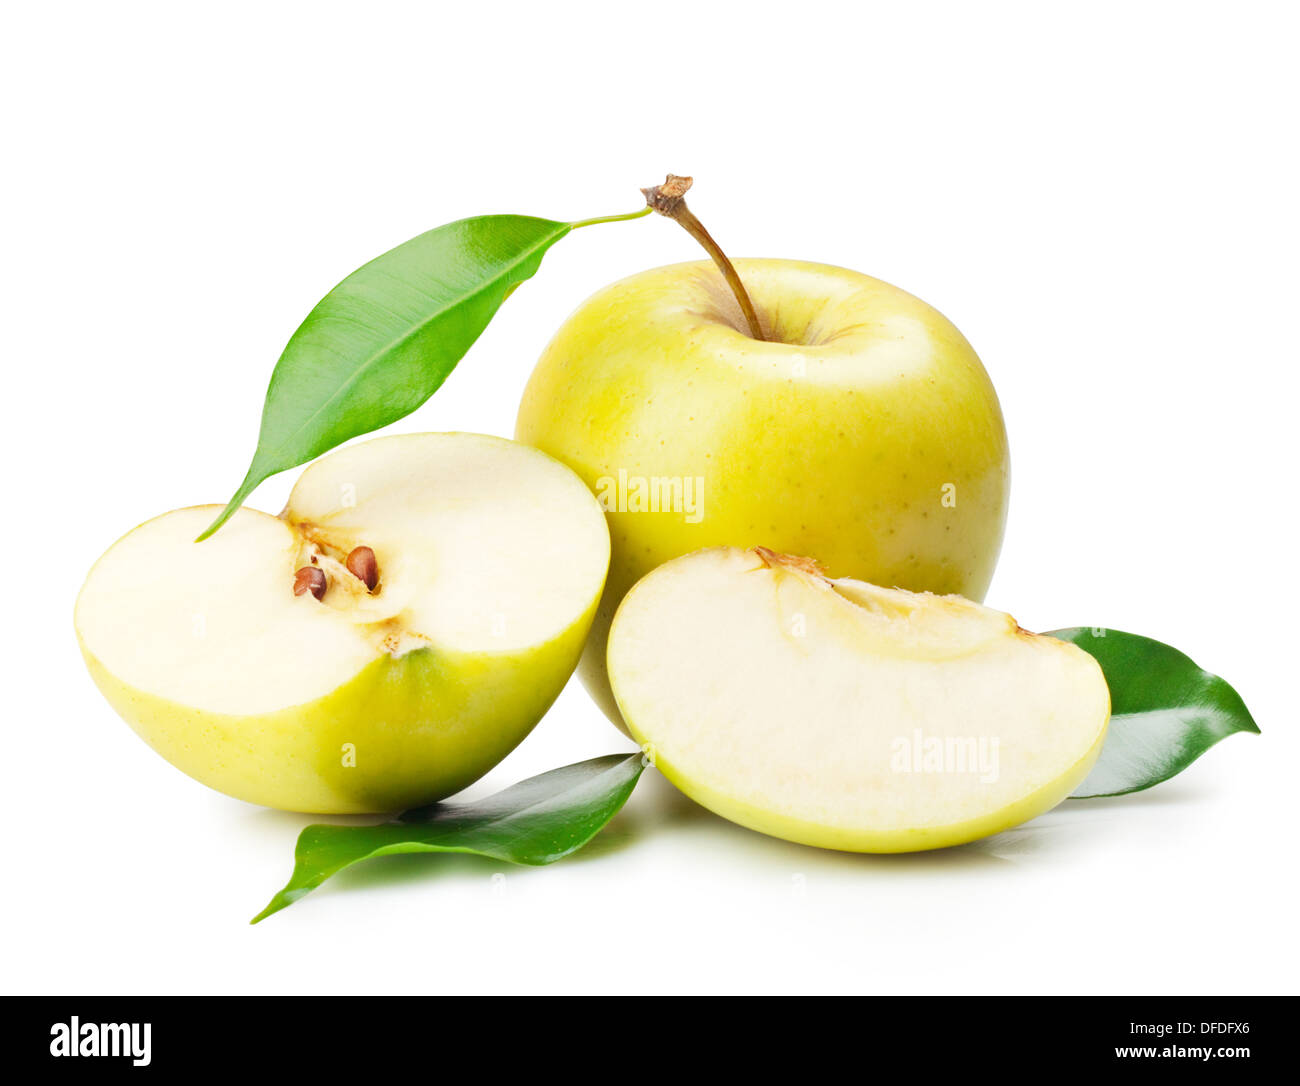 Delicious yellow apple with a leaf on a white background - Stock Image